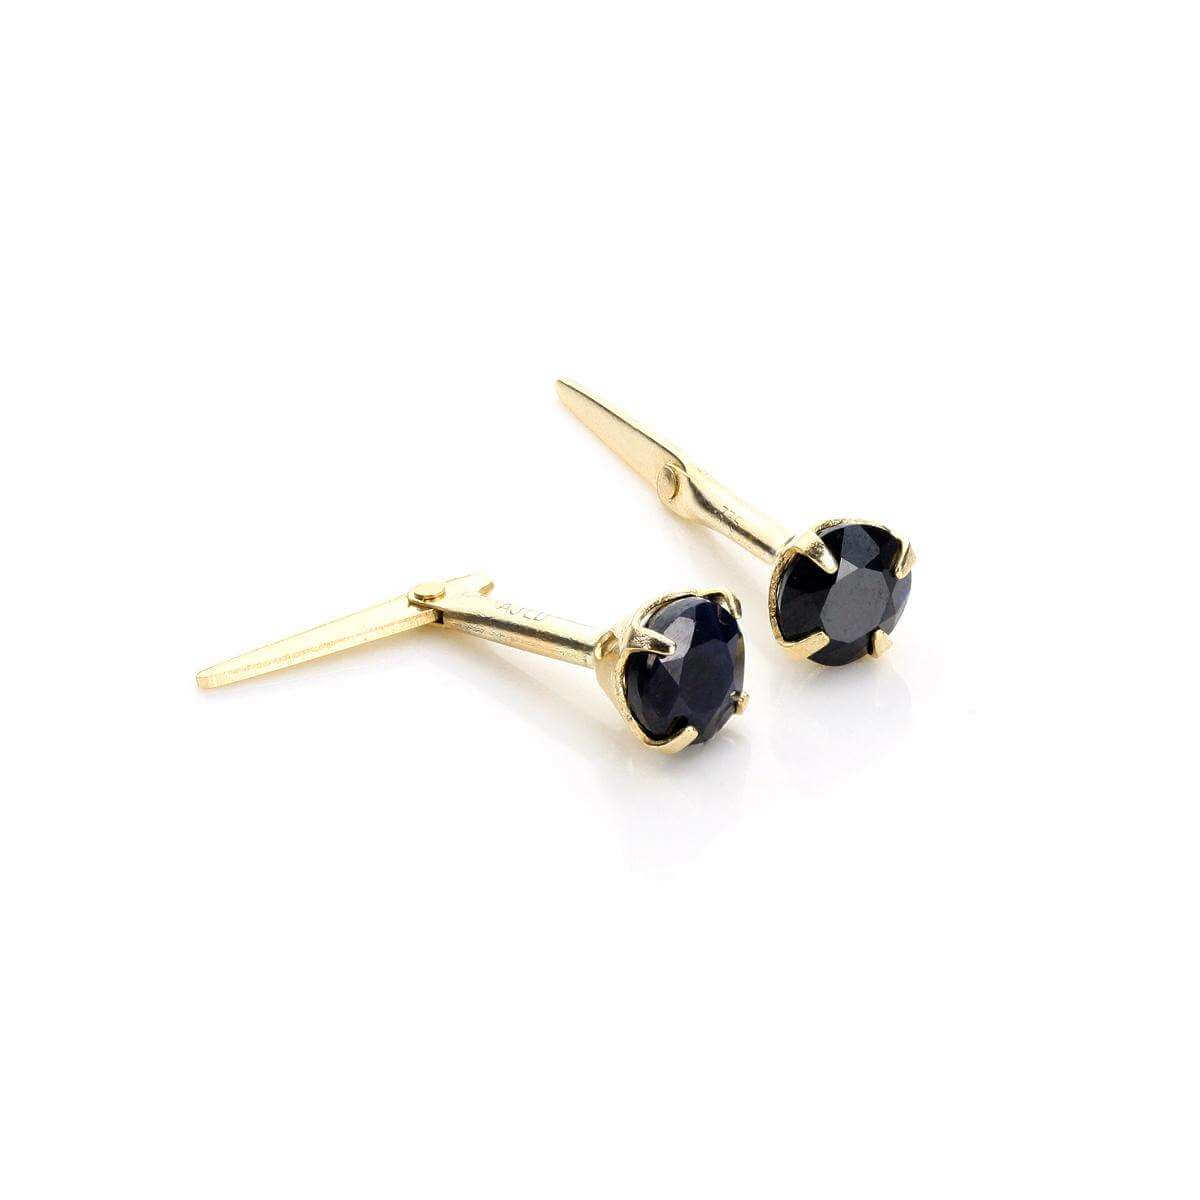 Andralok 9ct Yellow Gold Sapphire 3.5mm Round Stud Earrings